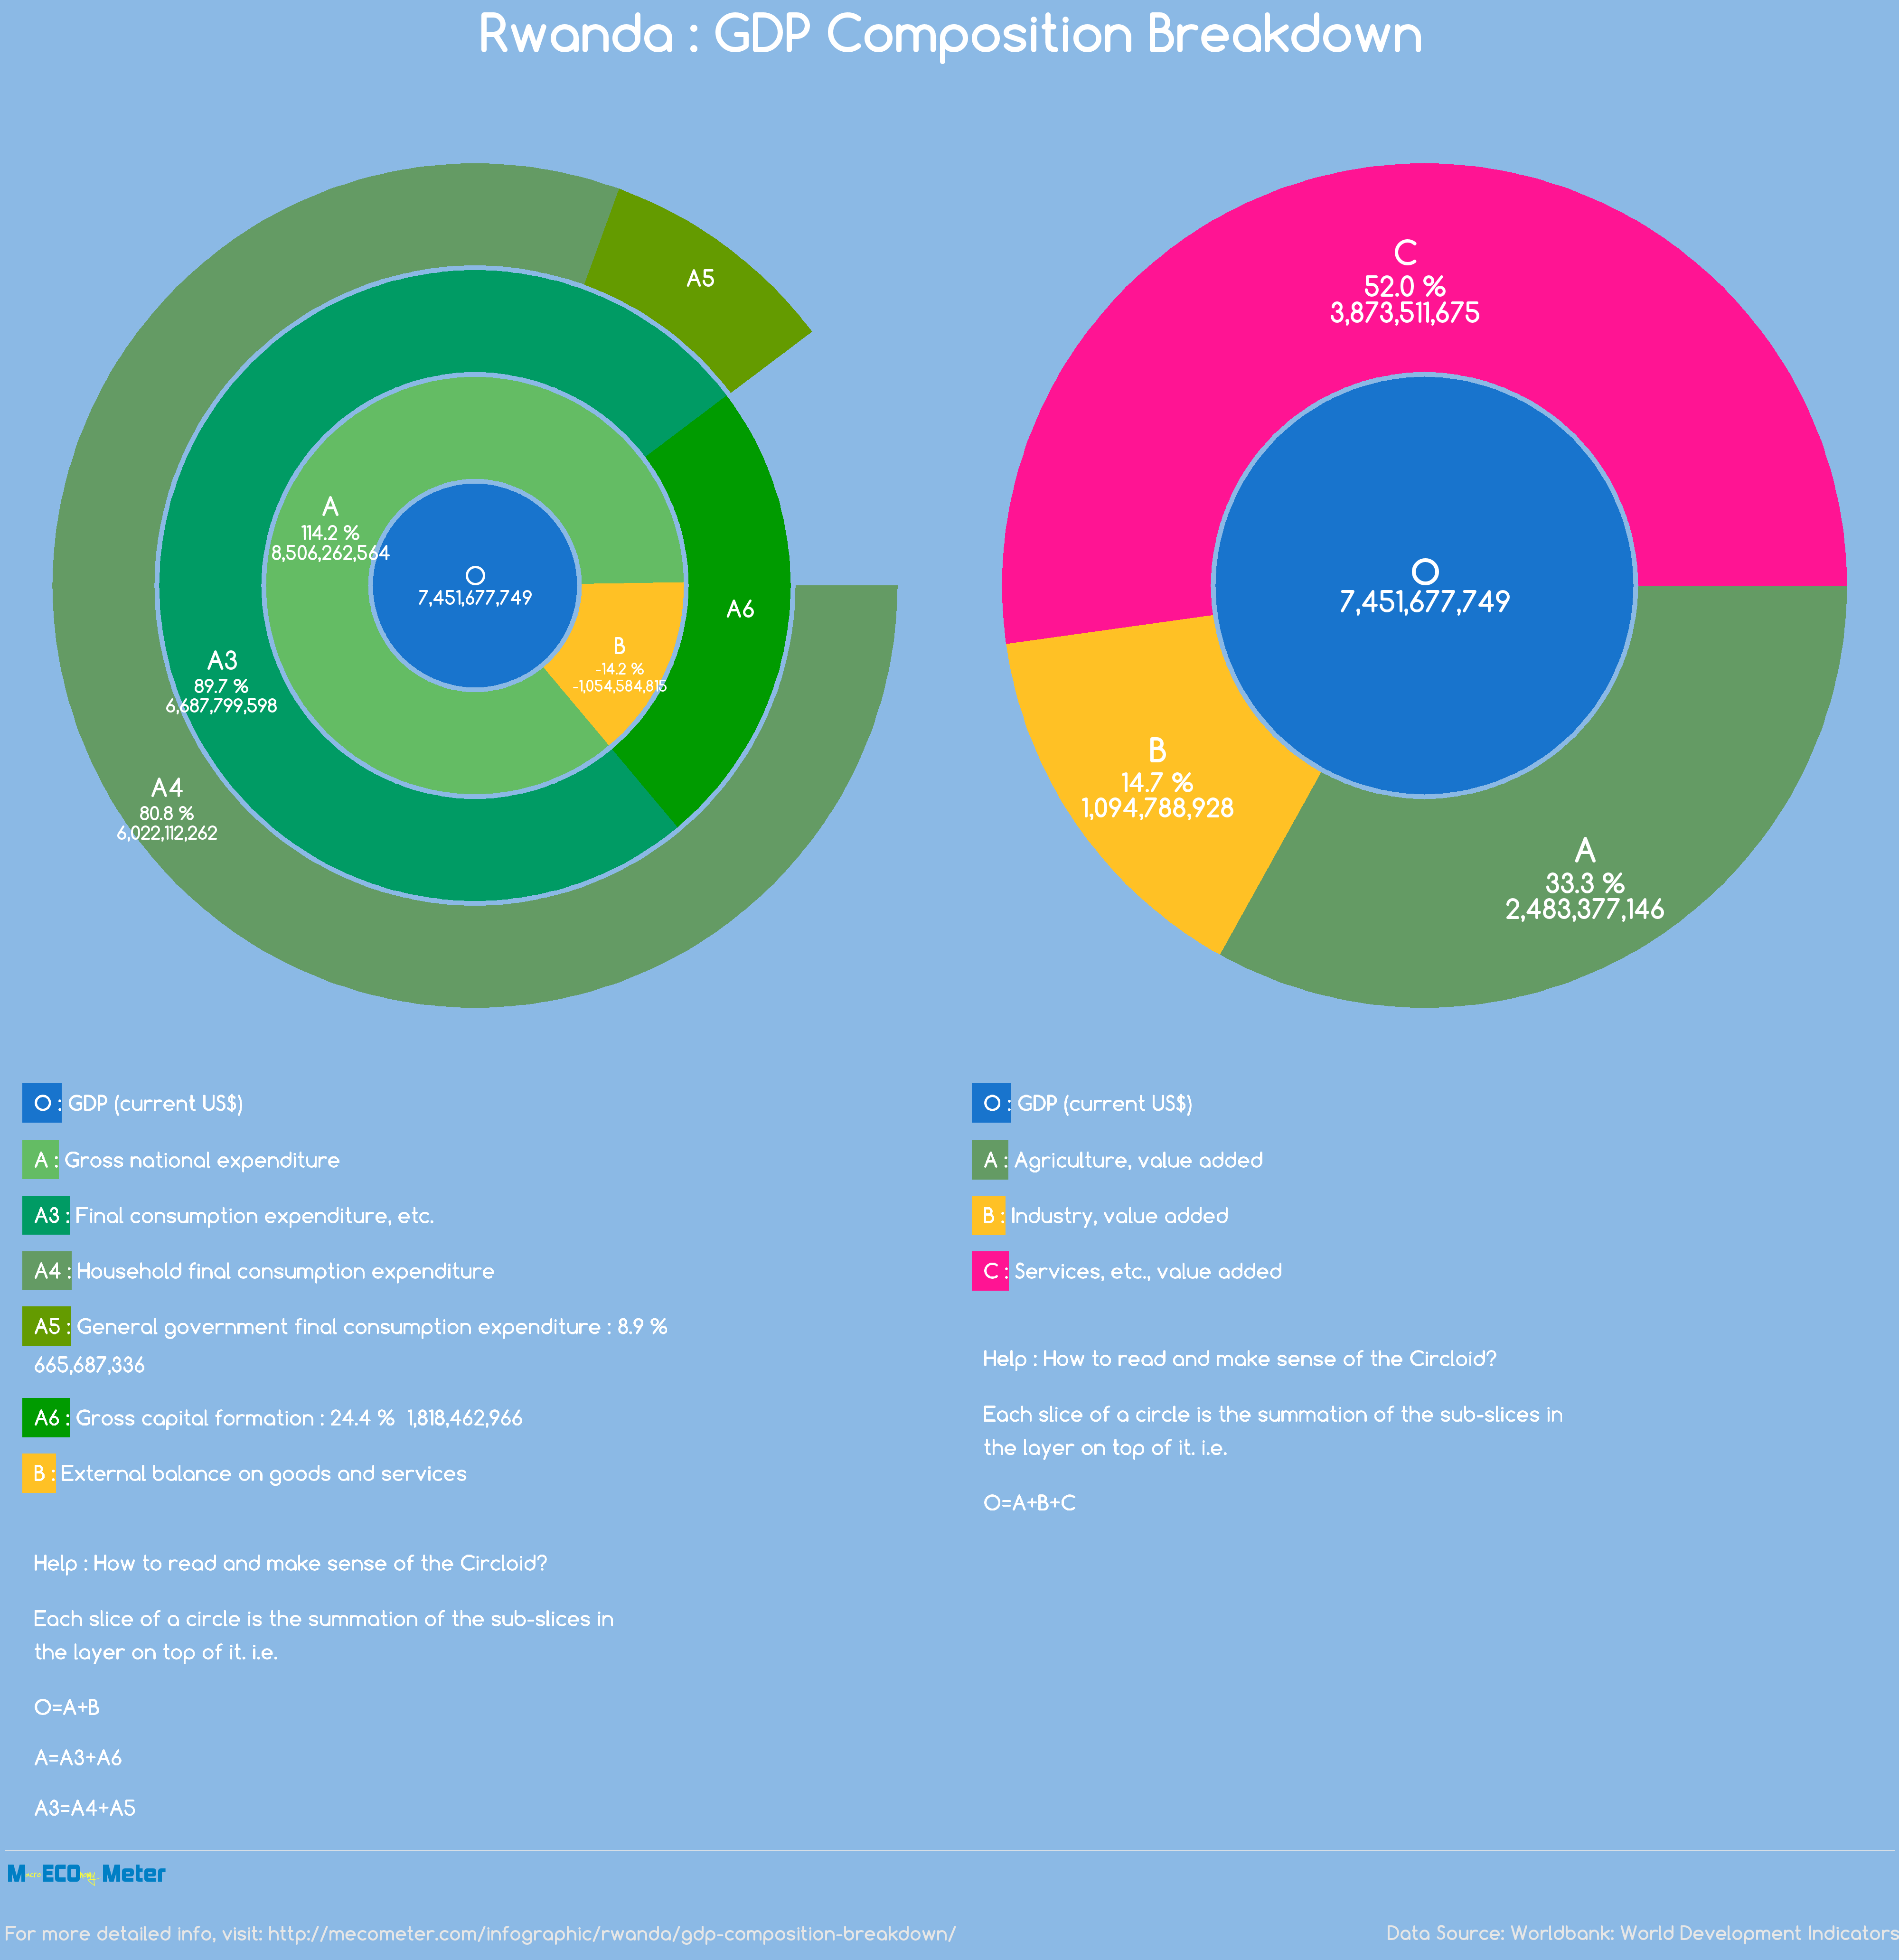 Rwanda : GDP Composition Breakdown